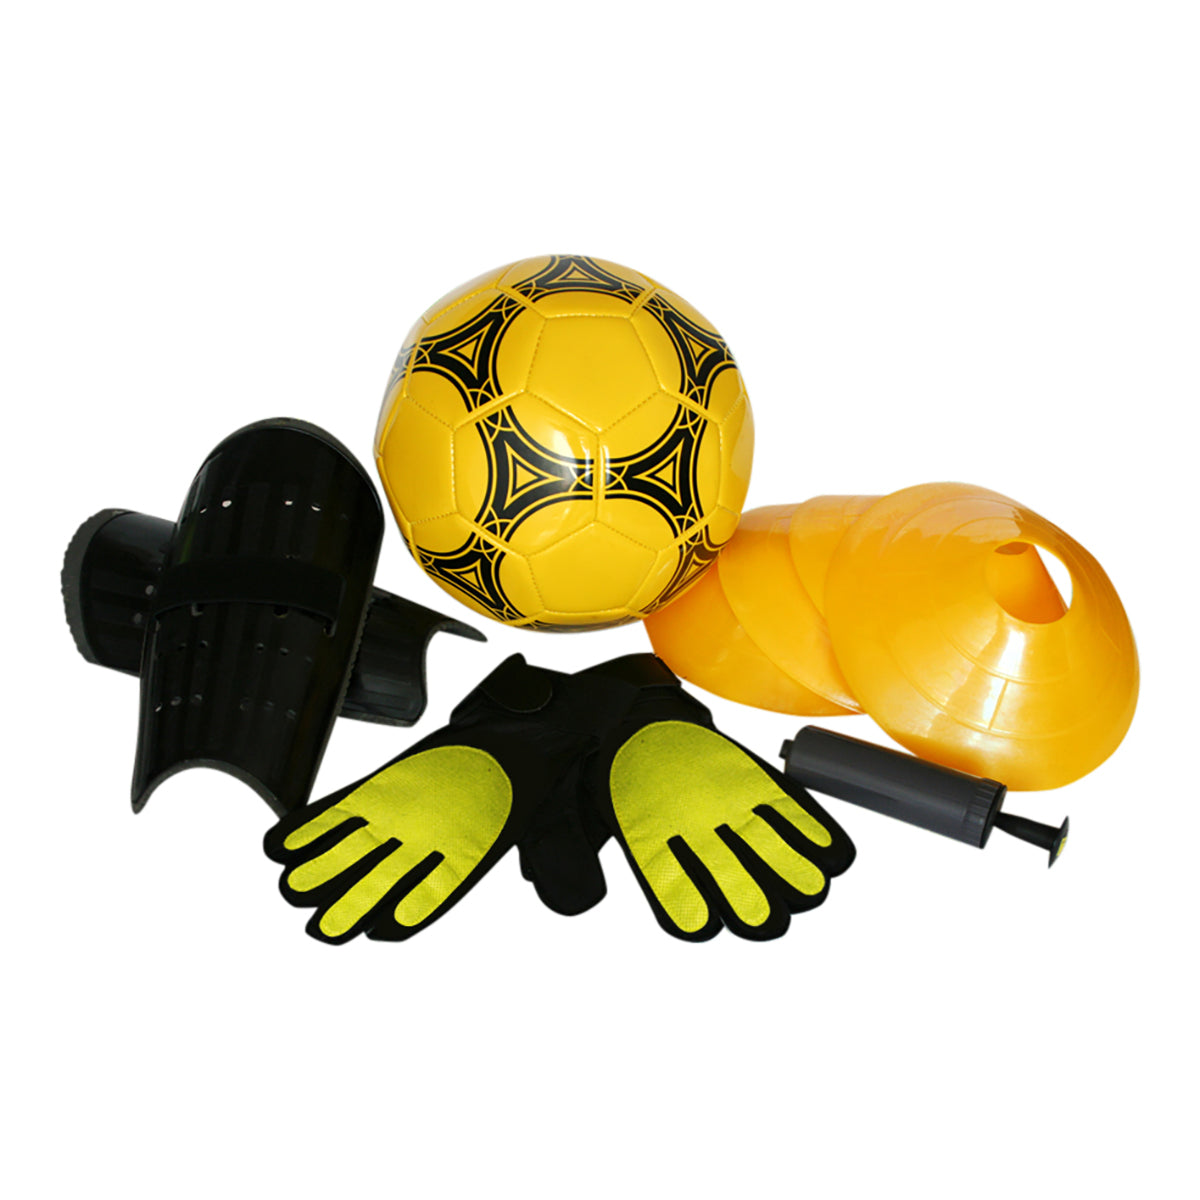 c3f7d7a56 Football Training Set & Backpack – Traditional Garden Games